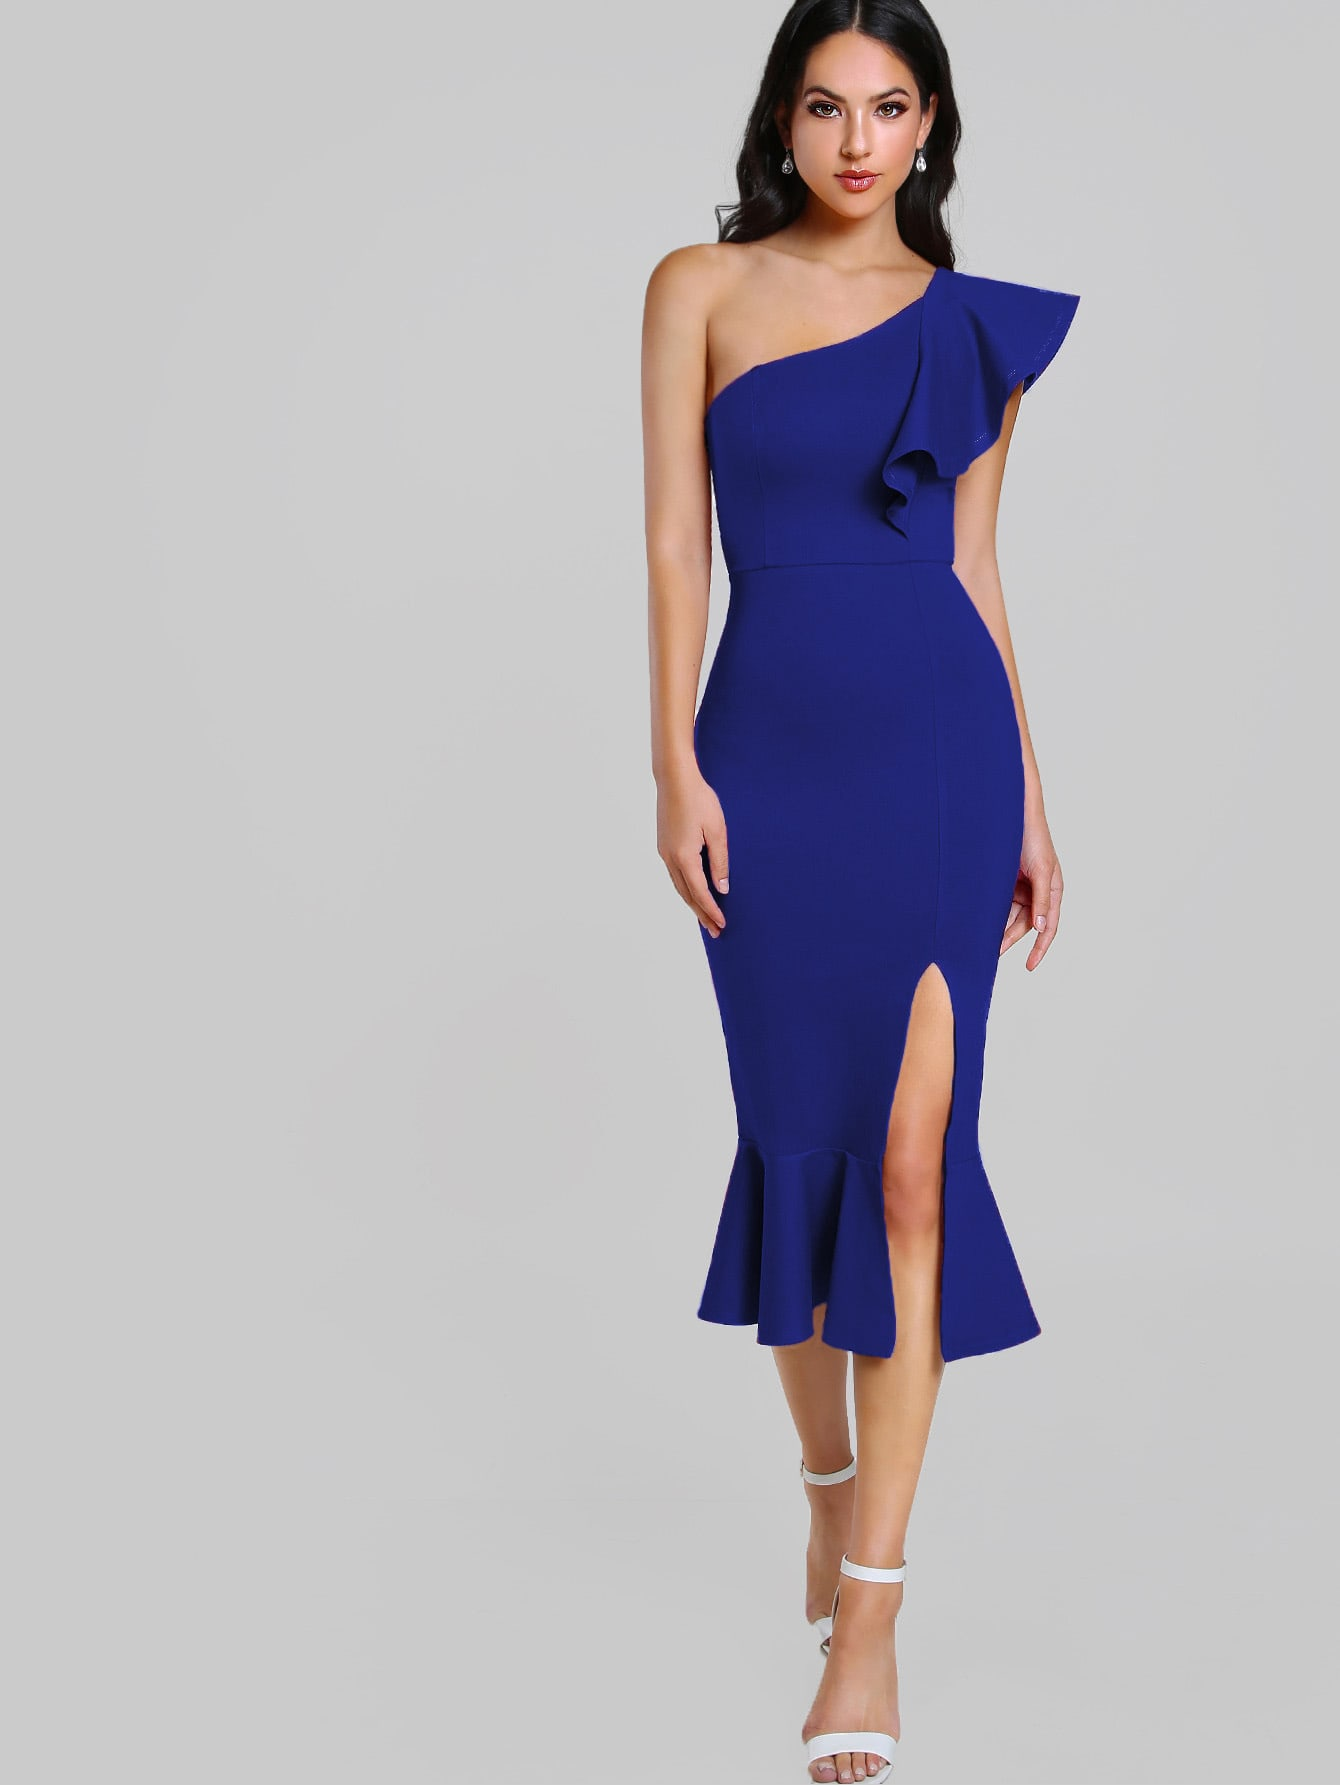 Flounce One Shoulder Slit Fishtail Dress Flounce One Shoulder Slit Fishtail Dress